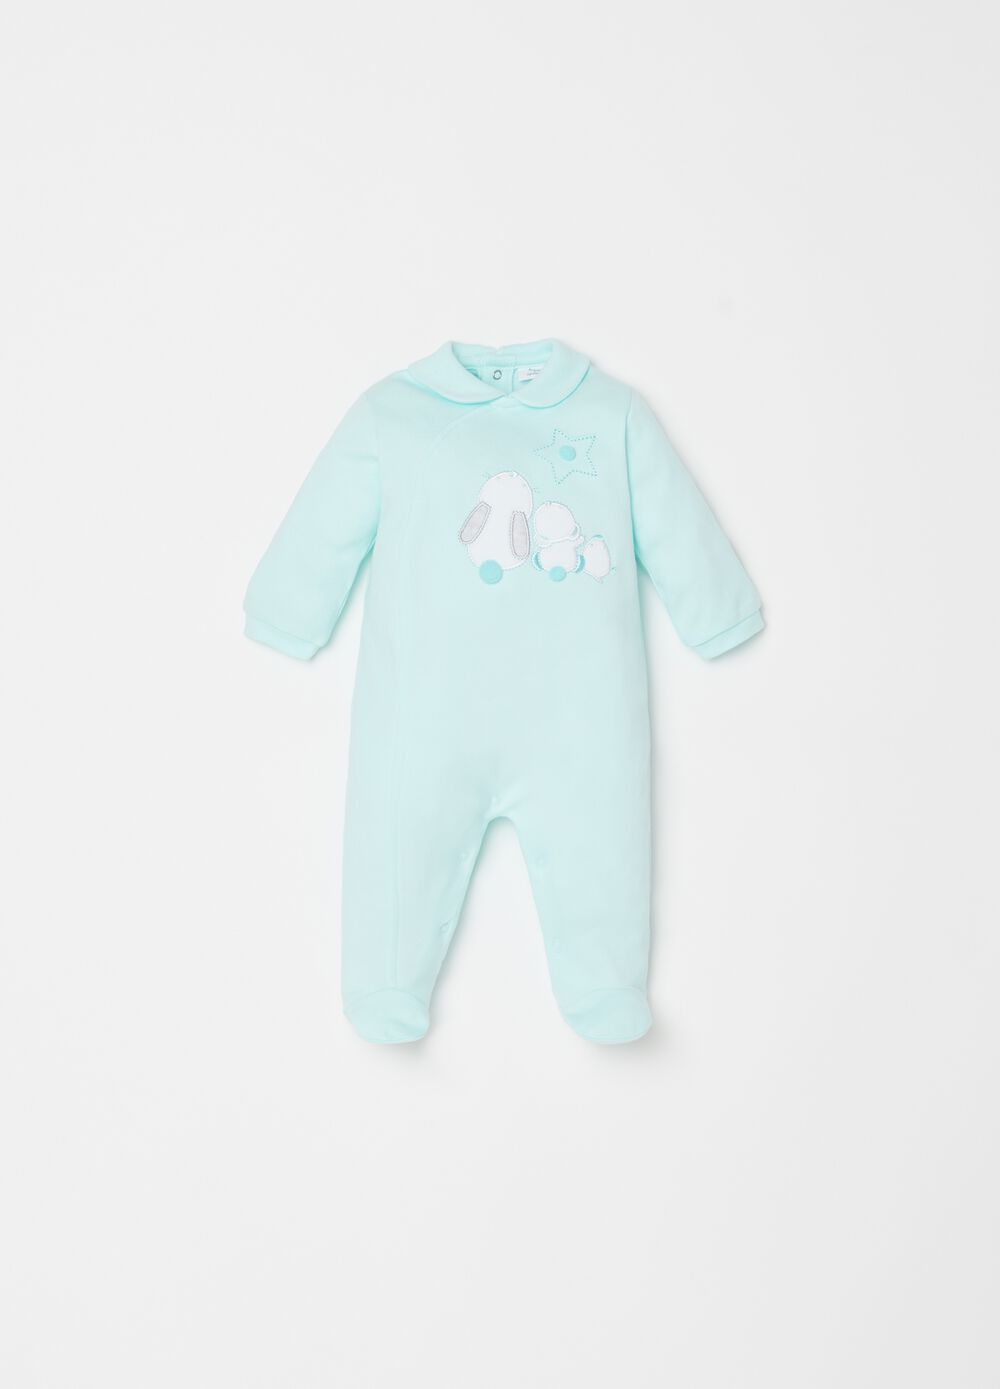 Onesie with feet and rabbit embroidery